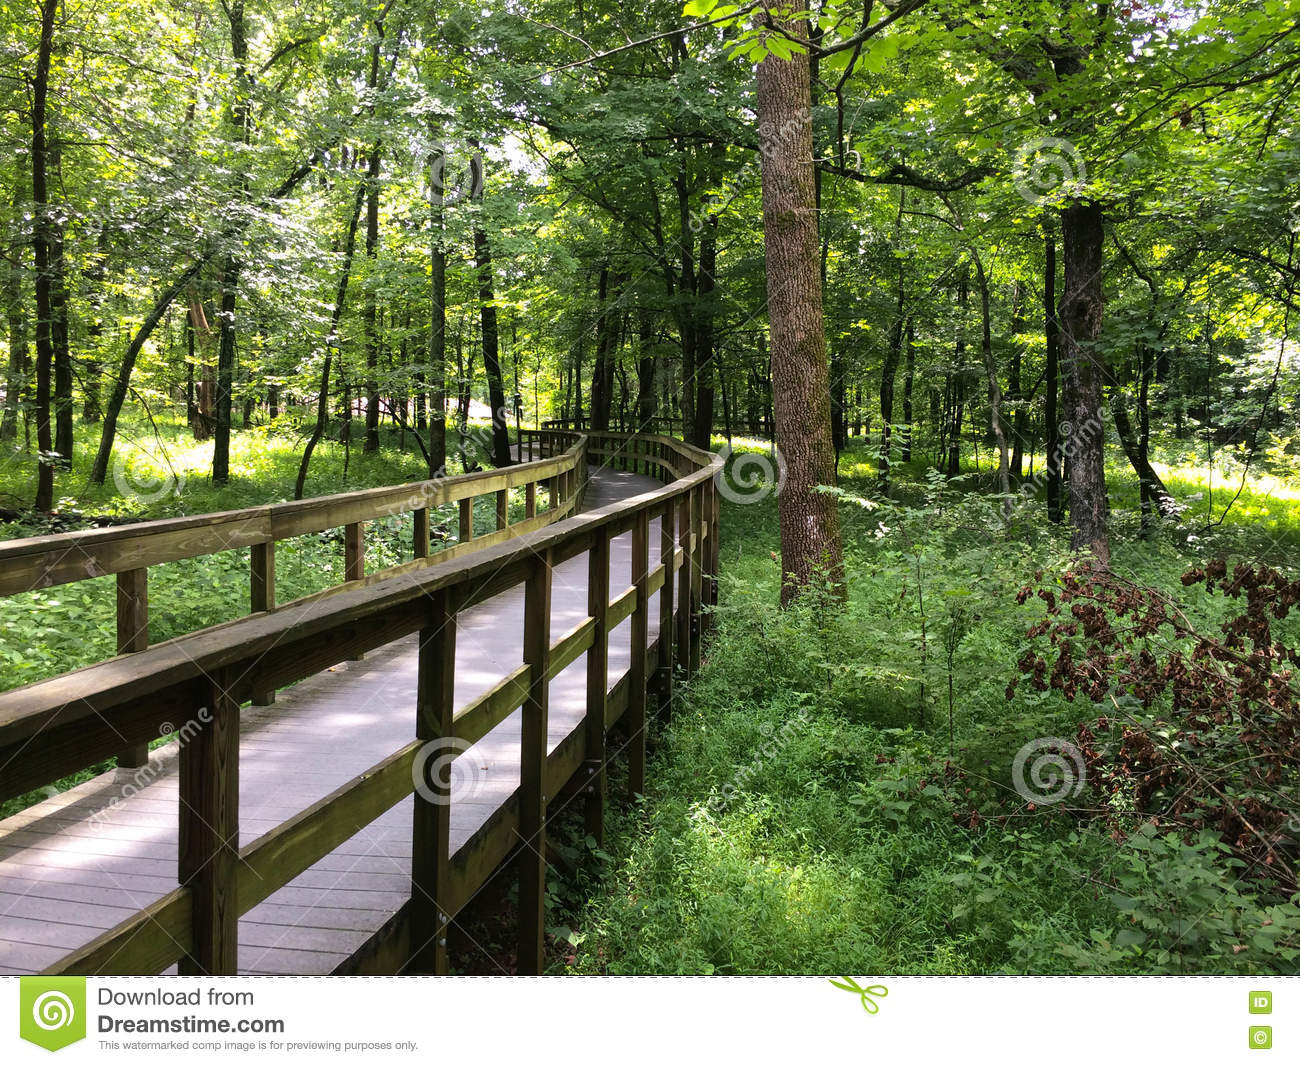 Wooden Walkway in Mammoth Cave National Park